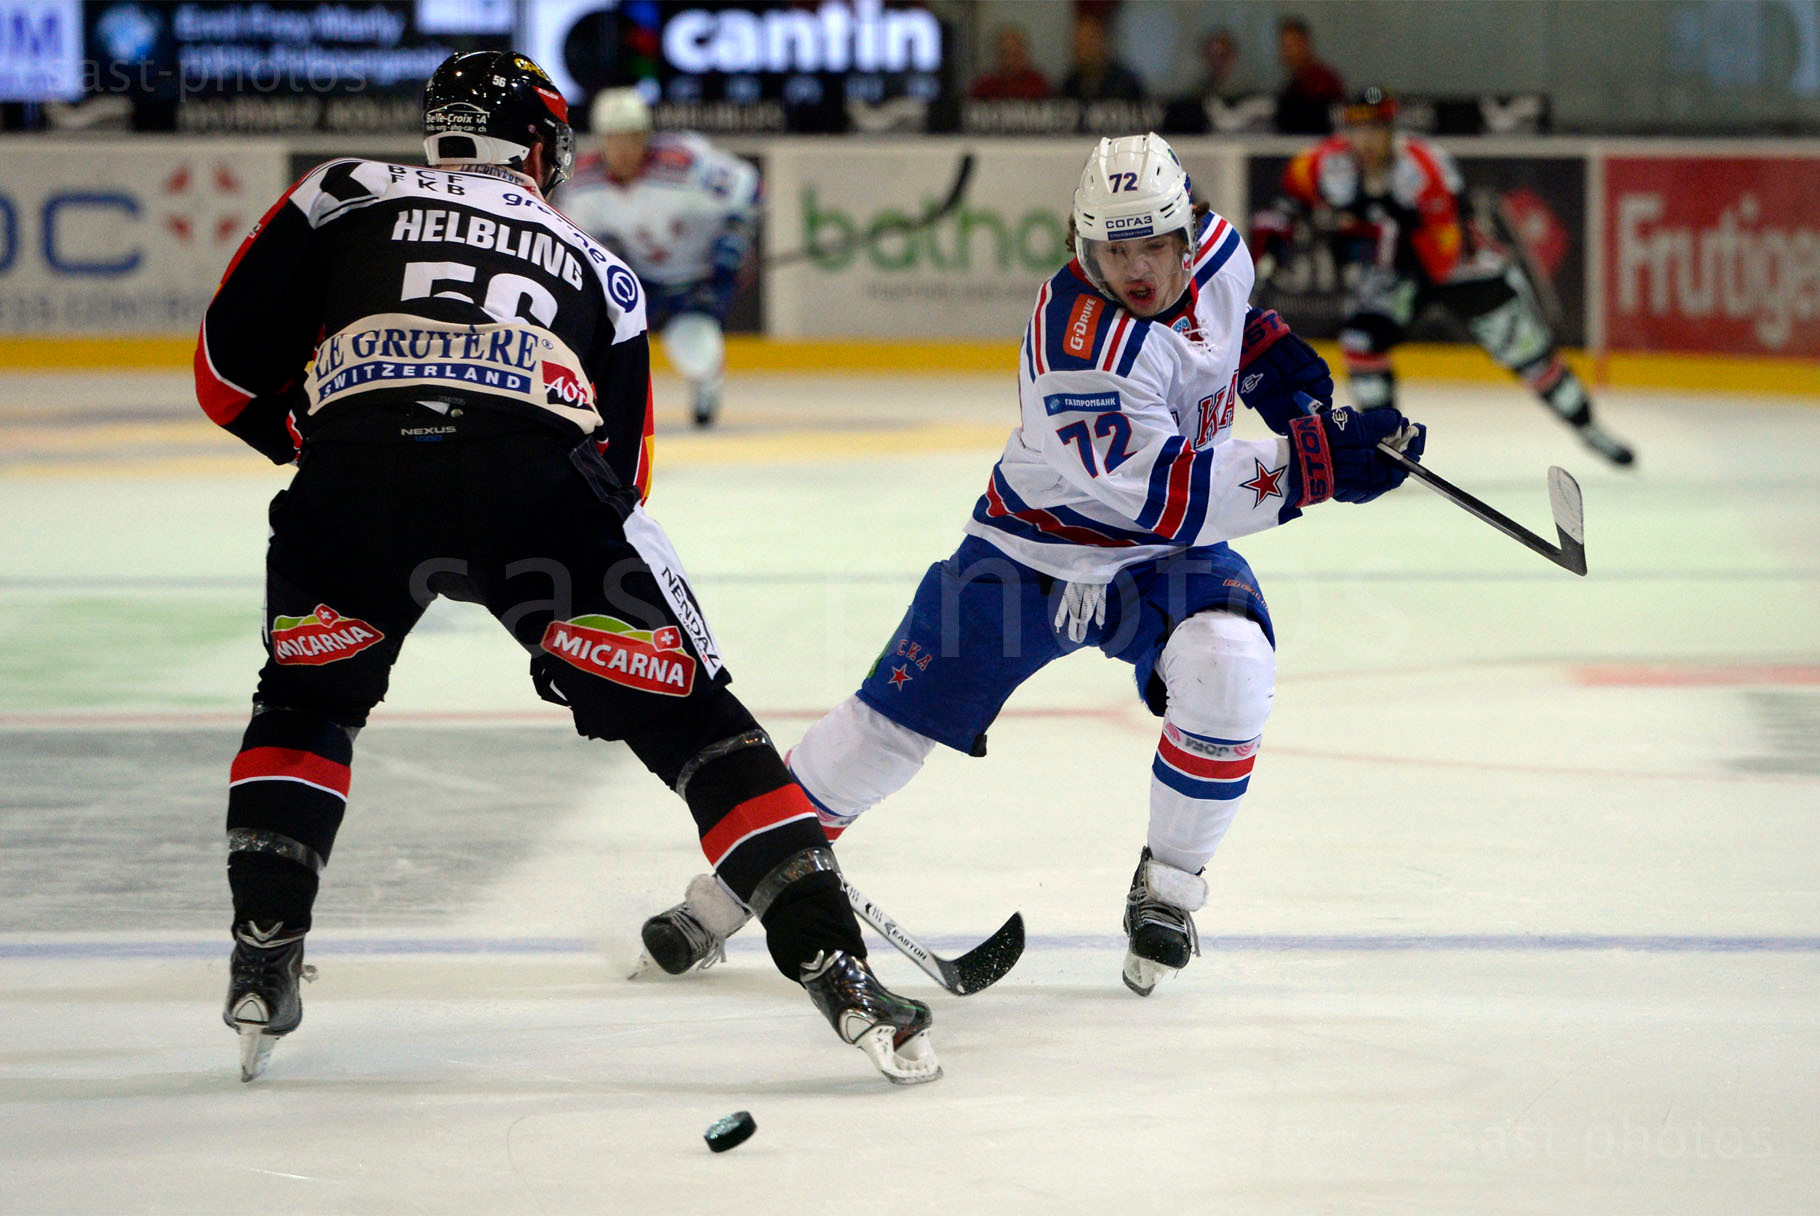 Timo Helbling (L. Fribourg) gegen Artemy Panarin (St. Petersburg)